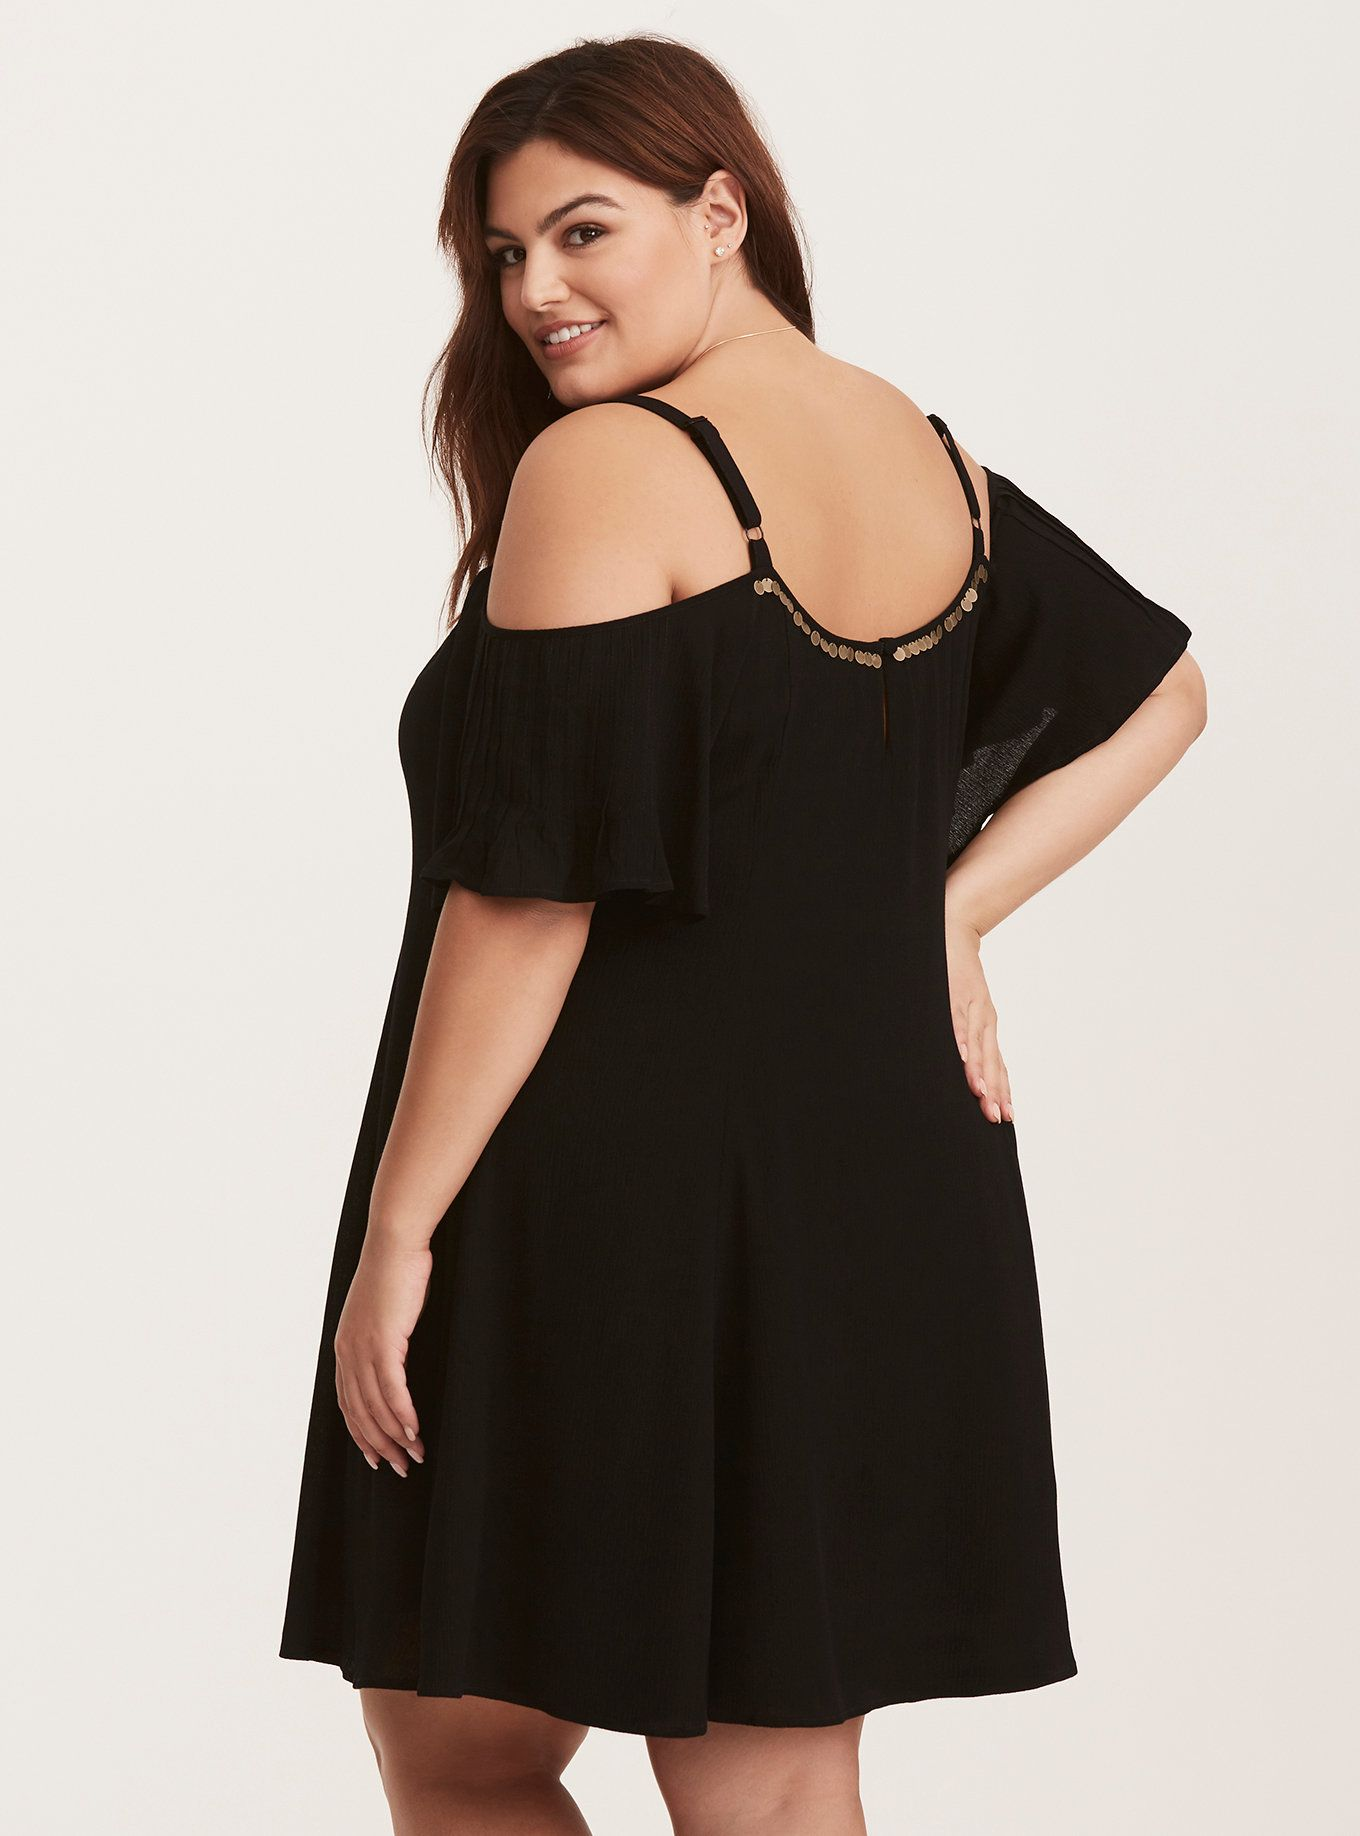 """Necklaces are no longer needed with this dress. Gold tone coins trim the neckline, adding shake-shake-shake quality. Pleats line the front lending flow.<div><ul><li style=""""list-style-position: inside !important; list-style-type: disc !important"""">Gauze fabric</li><li style=""""list-style-position: inside !important; list-style-type: disc !important"""">Scoop neck</li><li style=""""list-style-position: ins..."""